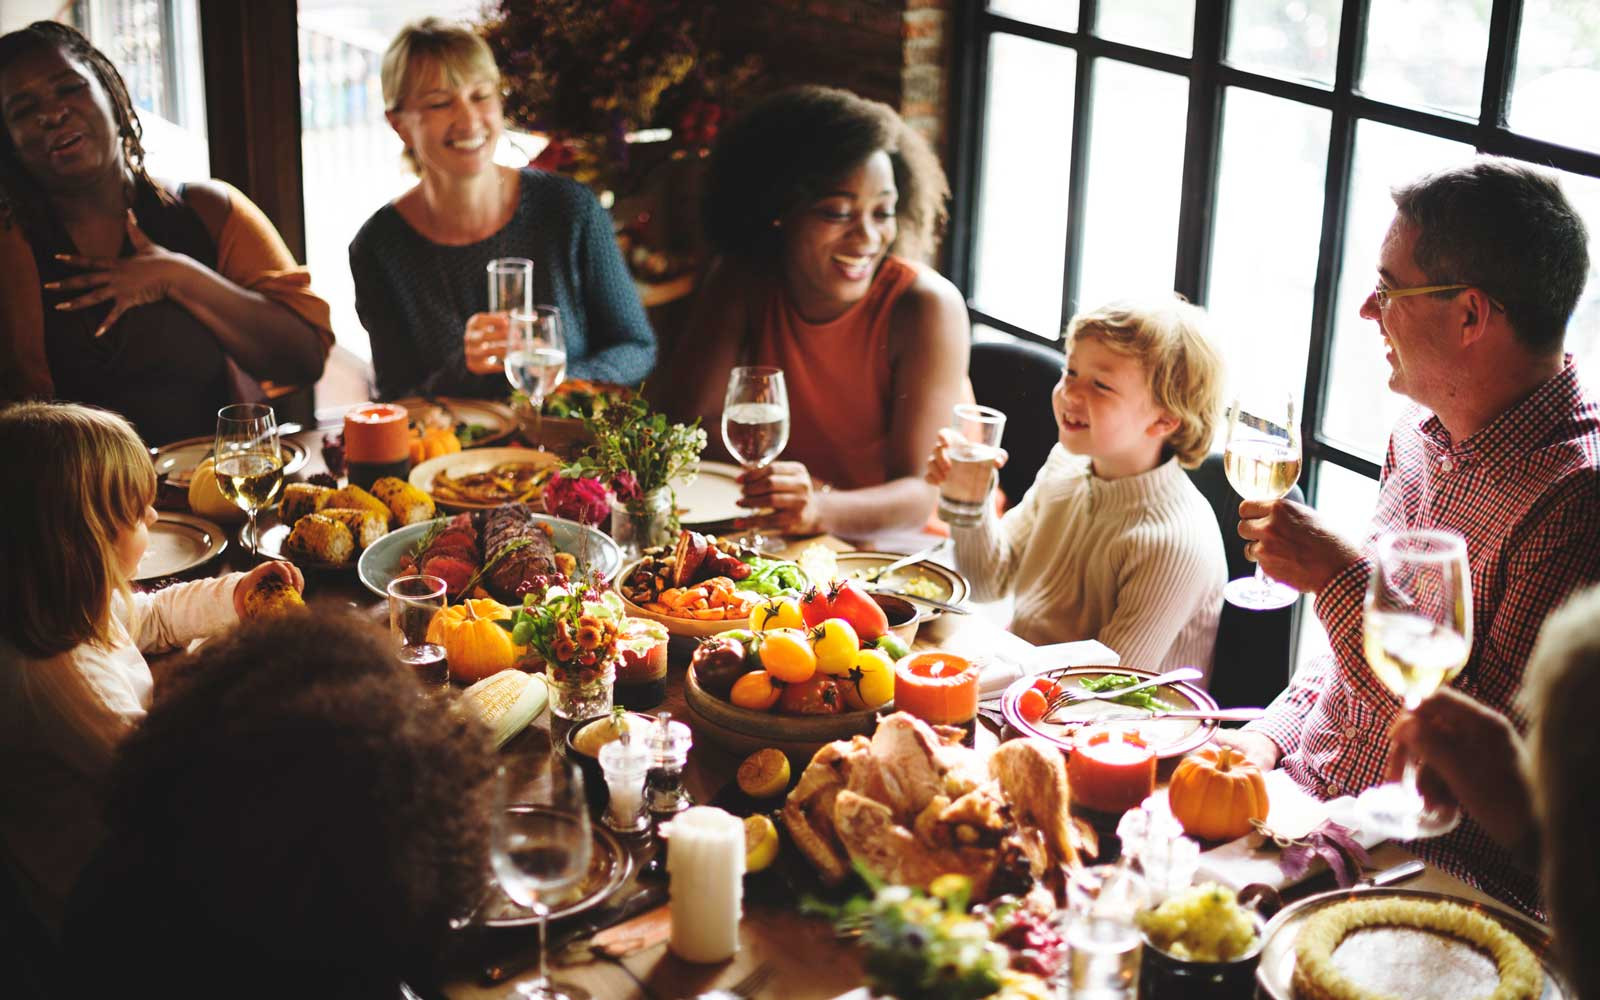 5 Pro Tips For Not Ruining Thanksgiving Dinner With Politics